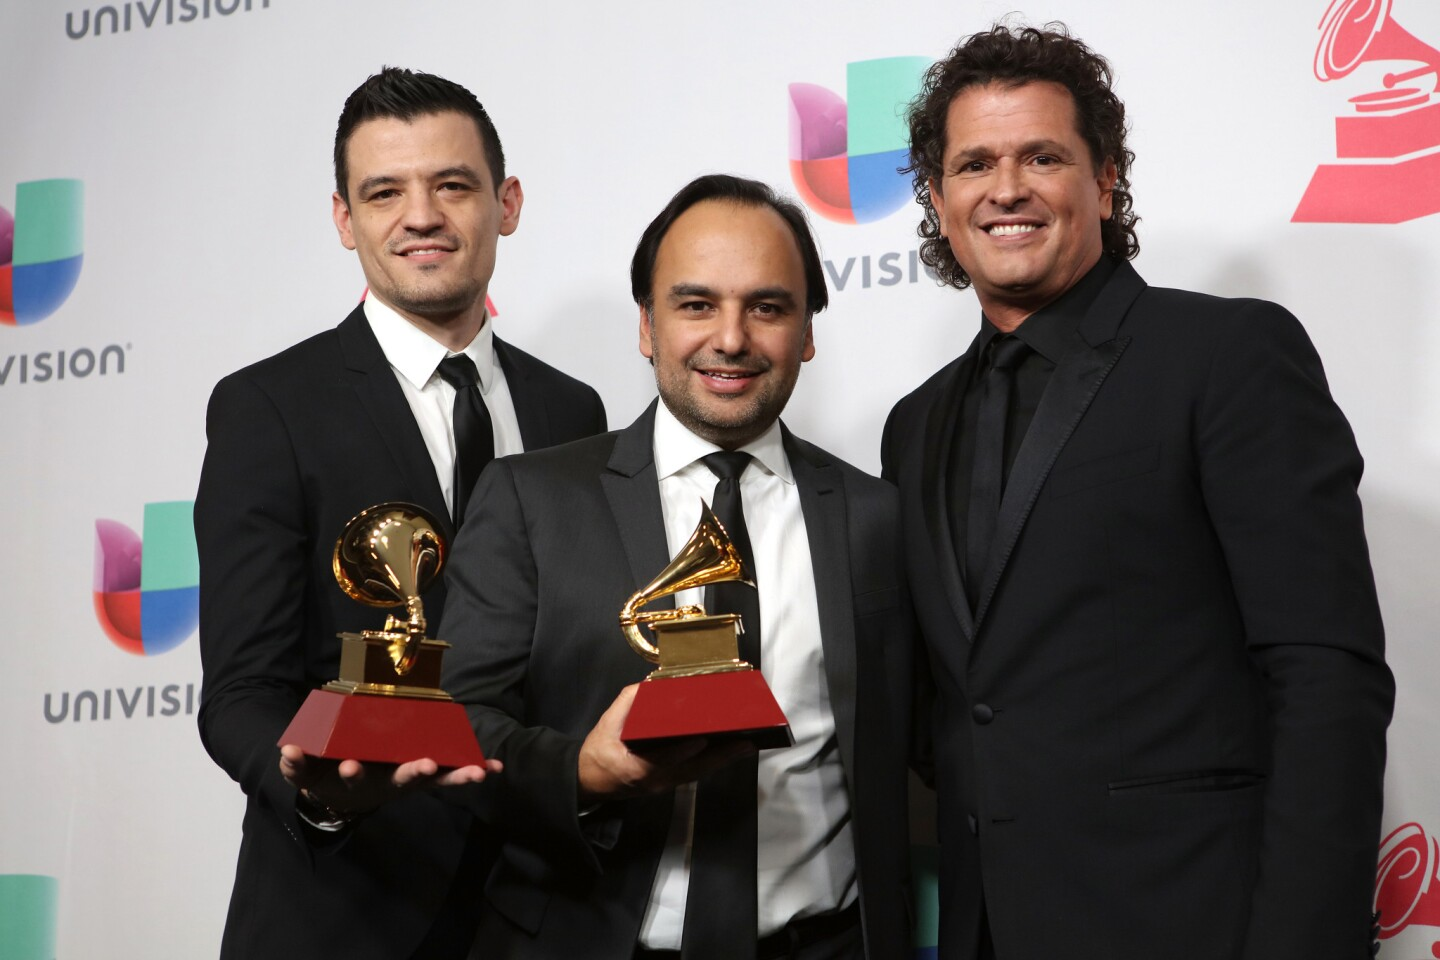 The XVII Annual Latin Grammy Awards held at the T-Mobile Arena on November 17, 2016 in Las Vegas, Nevada. (Photo by © Fanny Garcia/DDPixels)